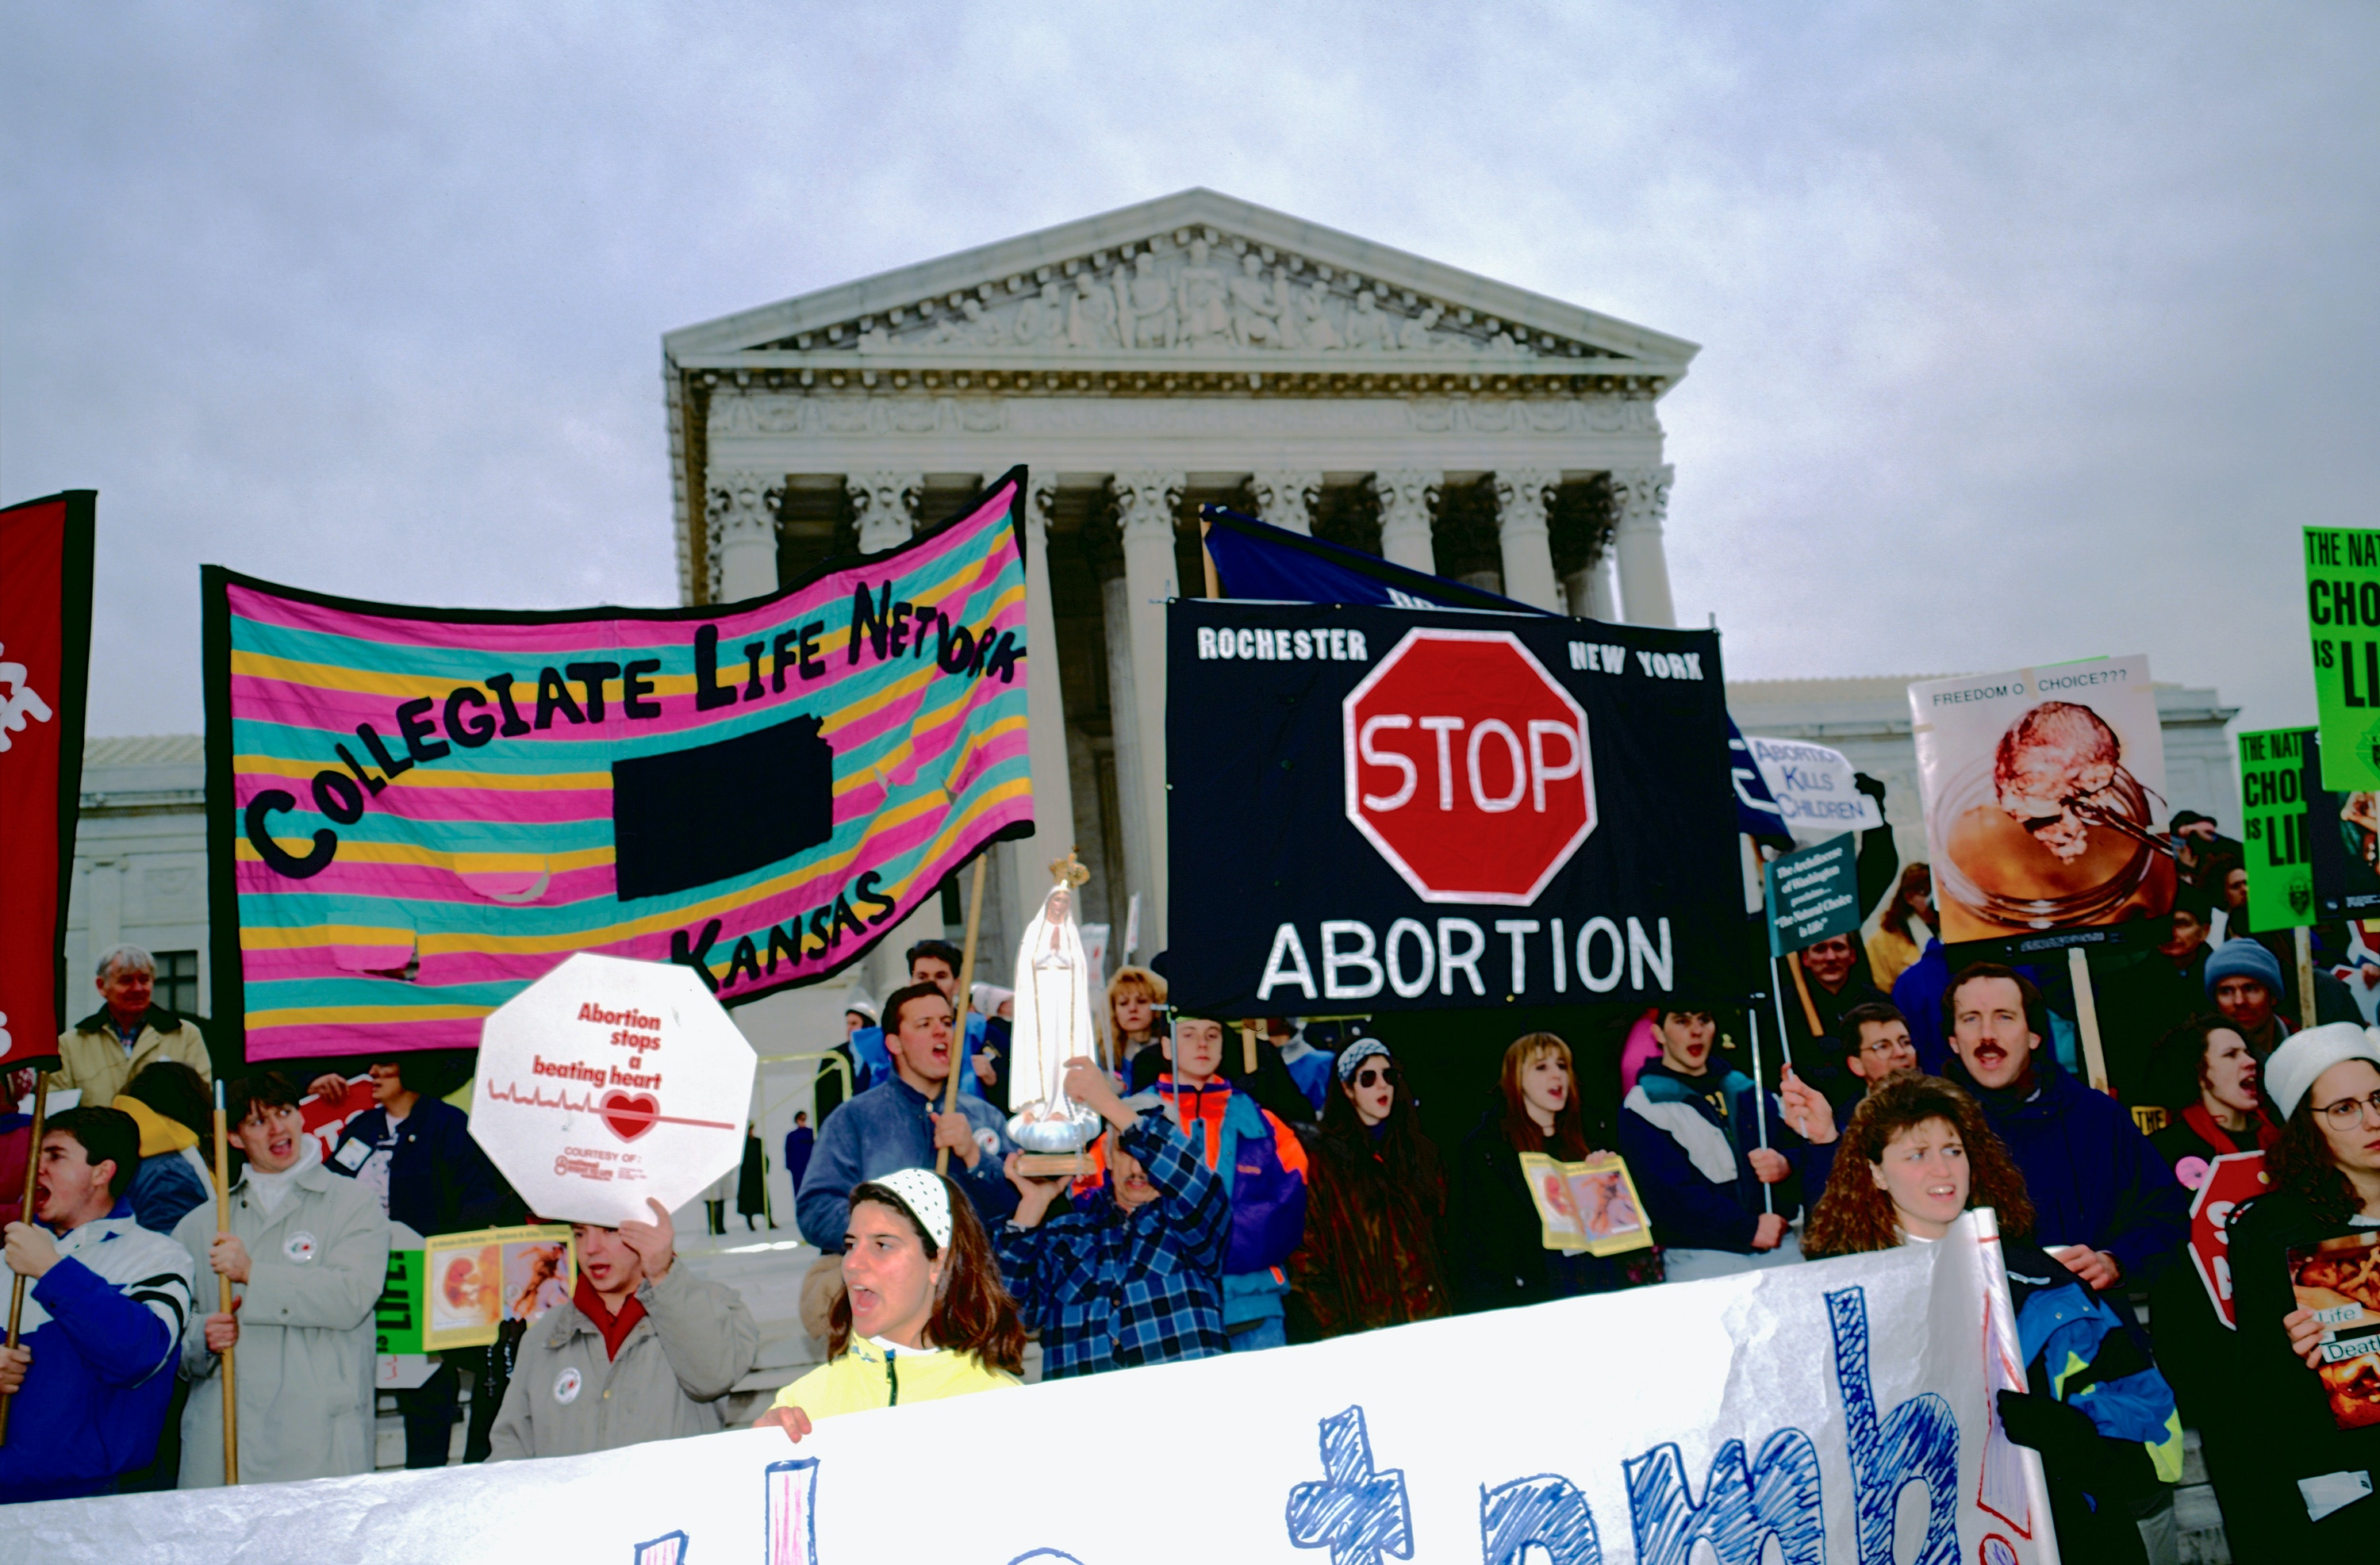 View of anti-abortion demonstrators, many with signs, in front of the US Supreme Court building during the annual March for Life, Washington DC, January 22, 1992. Among the signs are ones that read 'Collegiate Life Network, Kansas' and 'Stop Abortion.' (Photo by Mark Reinstein/Corbis via Getty Images)